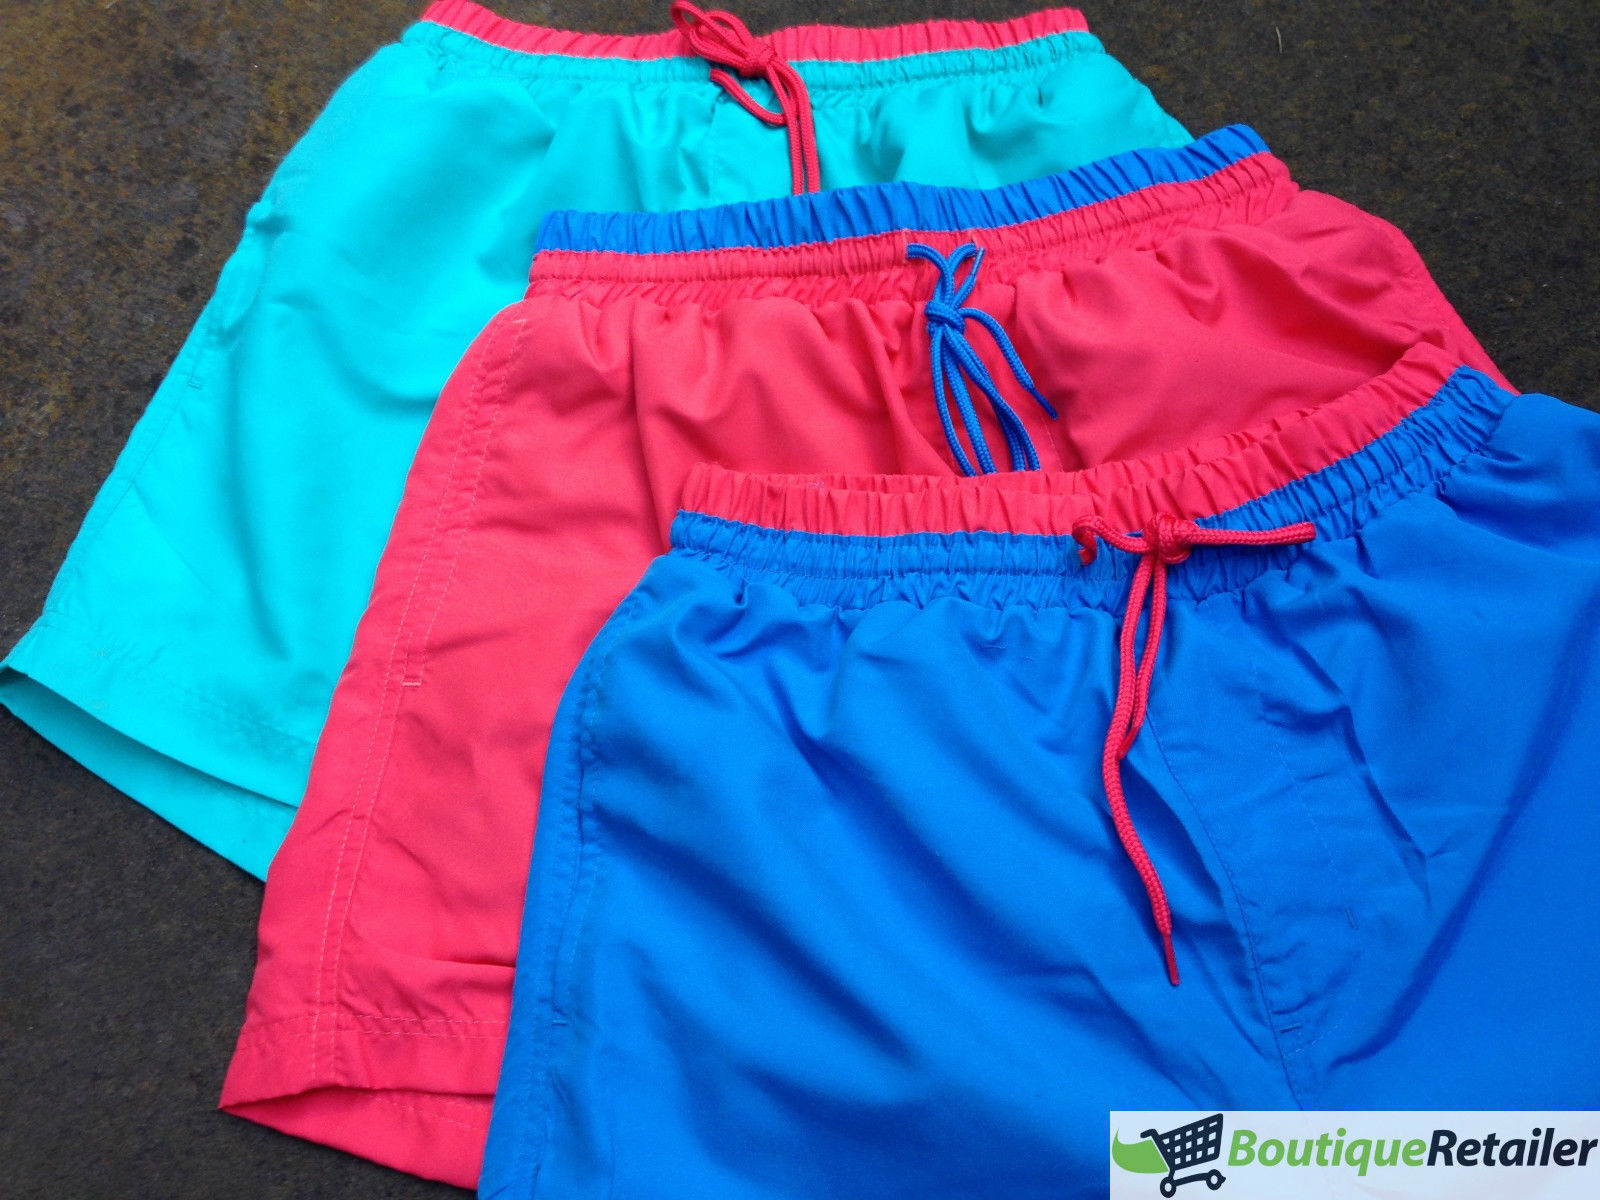 thumbnail 8 - Mens-BOARD-SHORTS-Surf-Beach-Swim-Quick-Dry-Boardies-PLAIN-Lined-Pockets-S-XXL